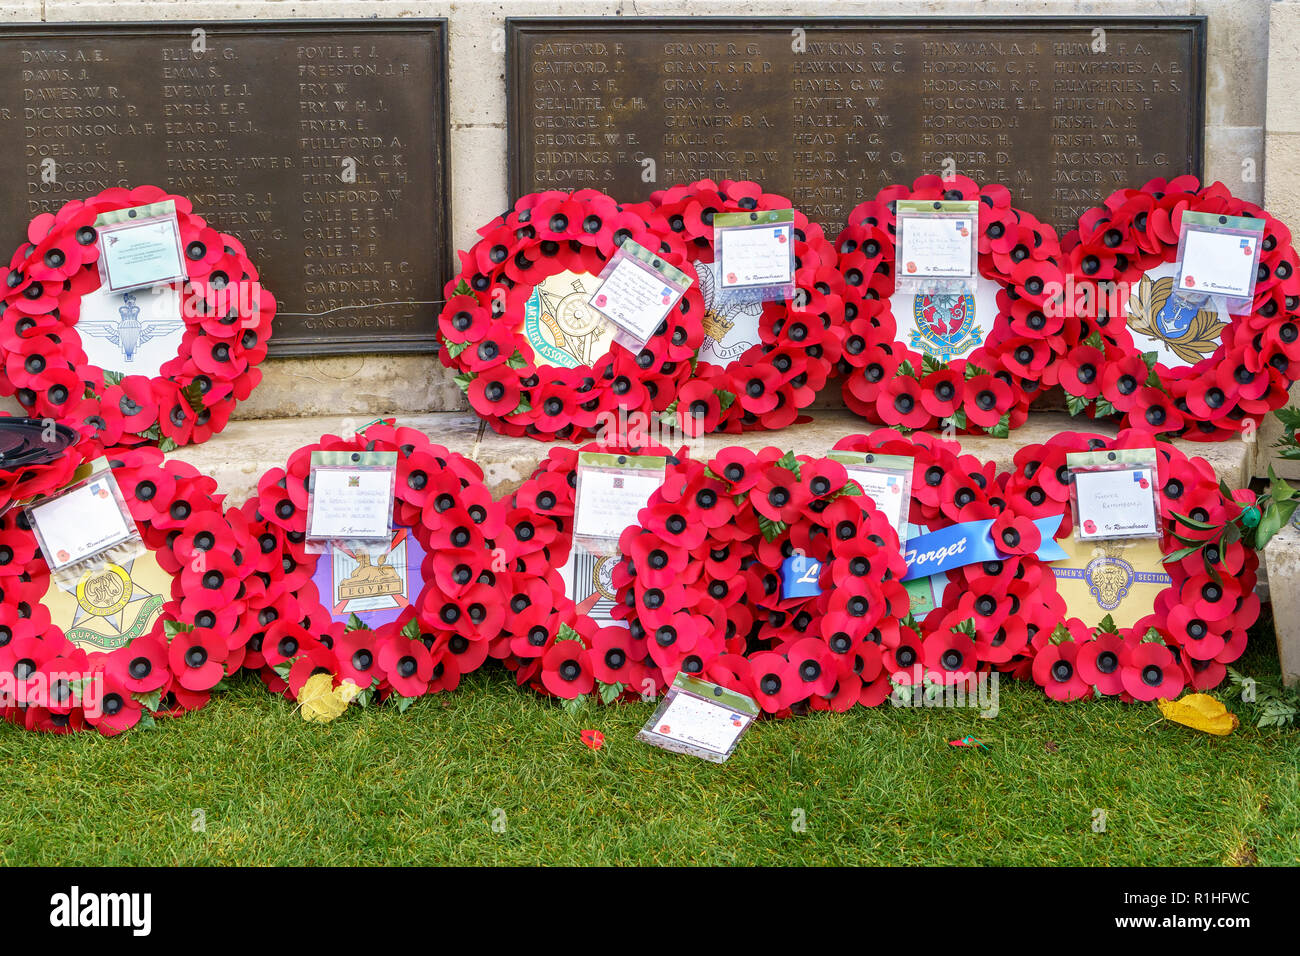 Poppy wreaths placed on war memorial in guildhall square Salisbury UK - Stock Image